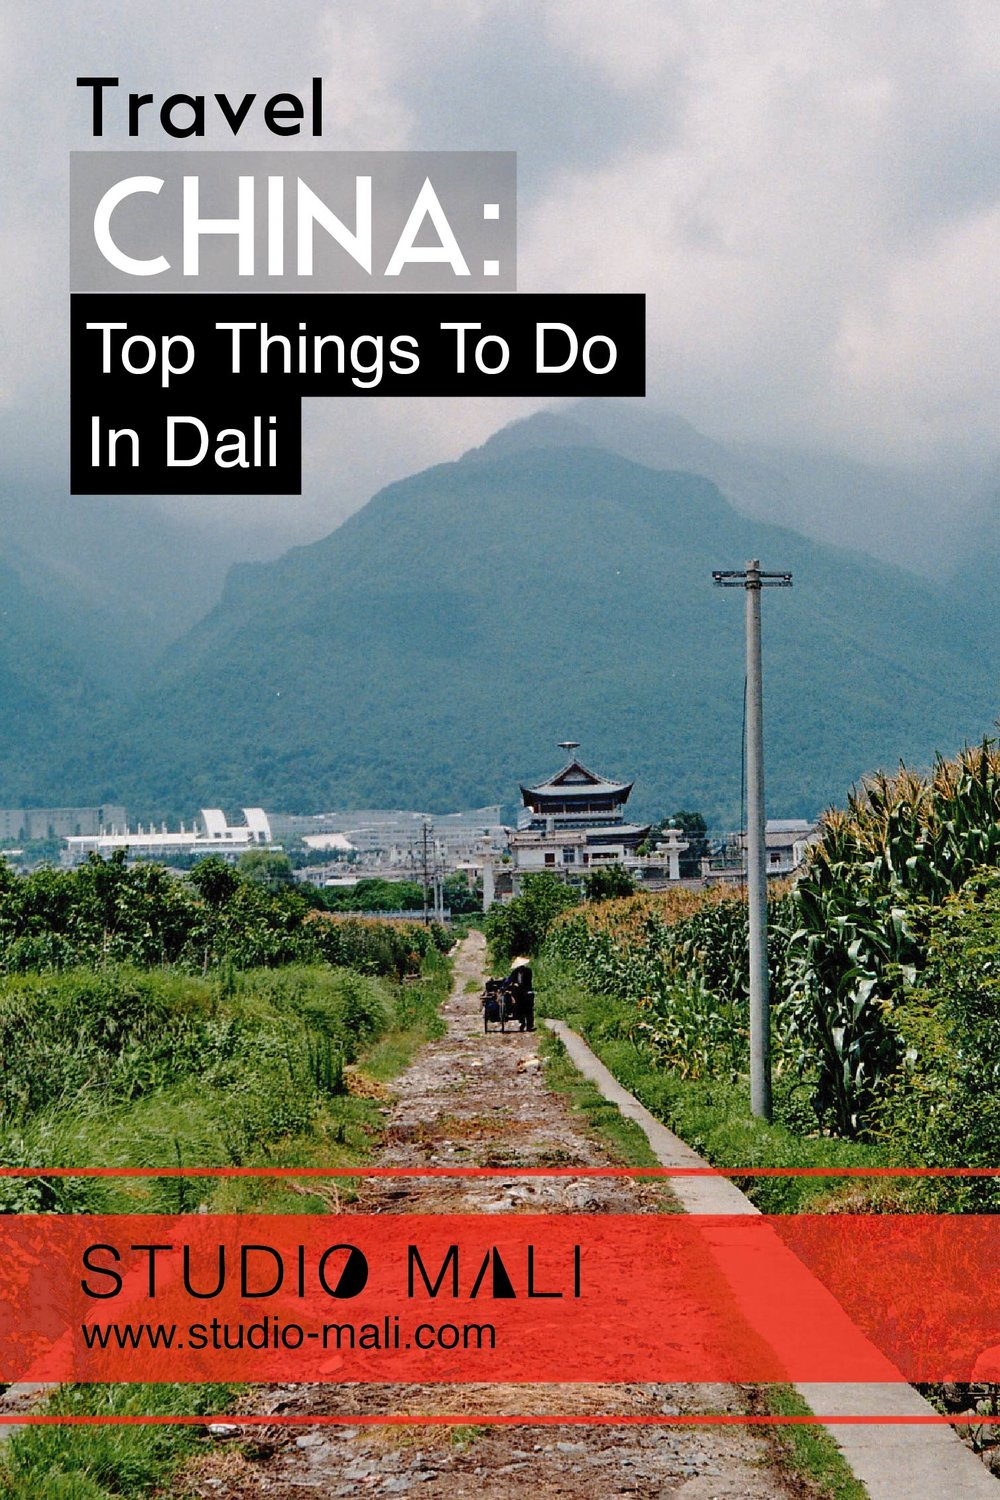 China - Top Things To Do In Dali, by Studio Mali